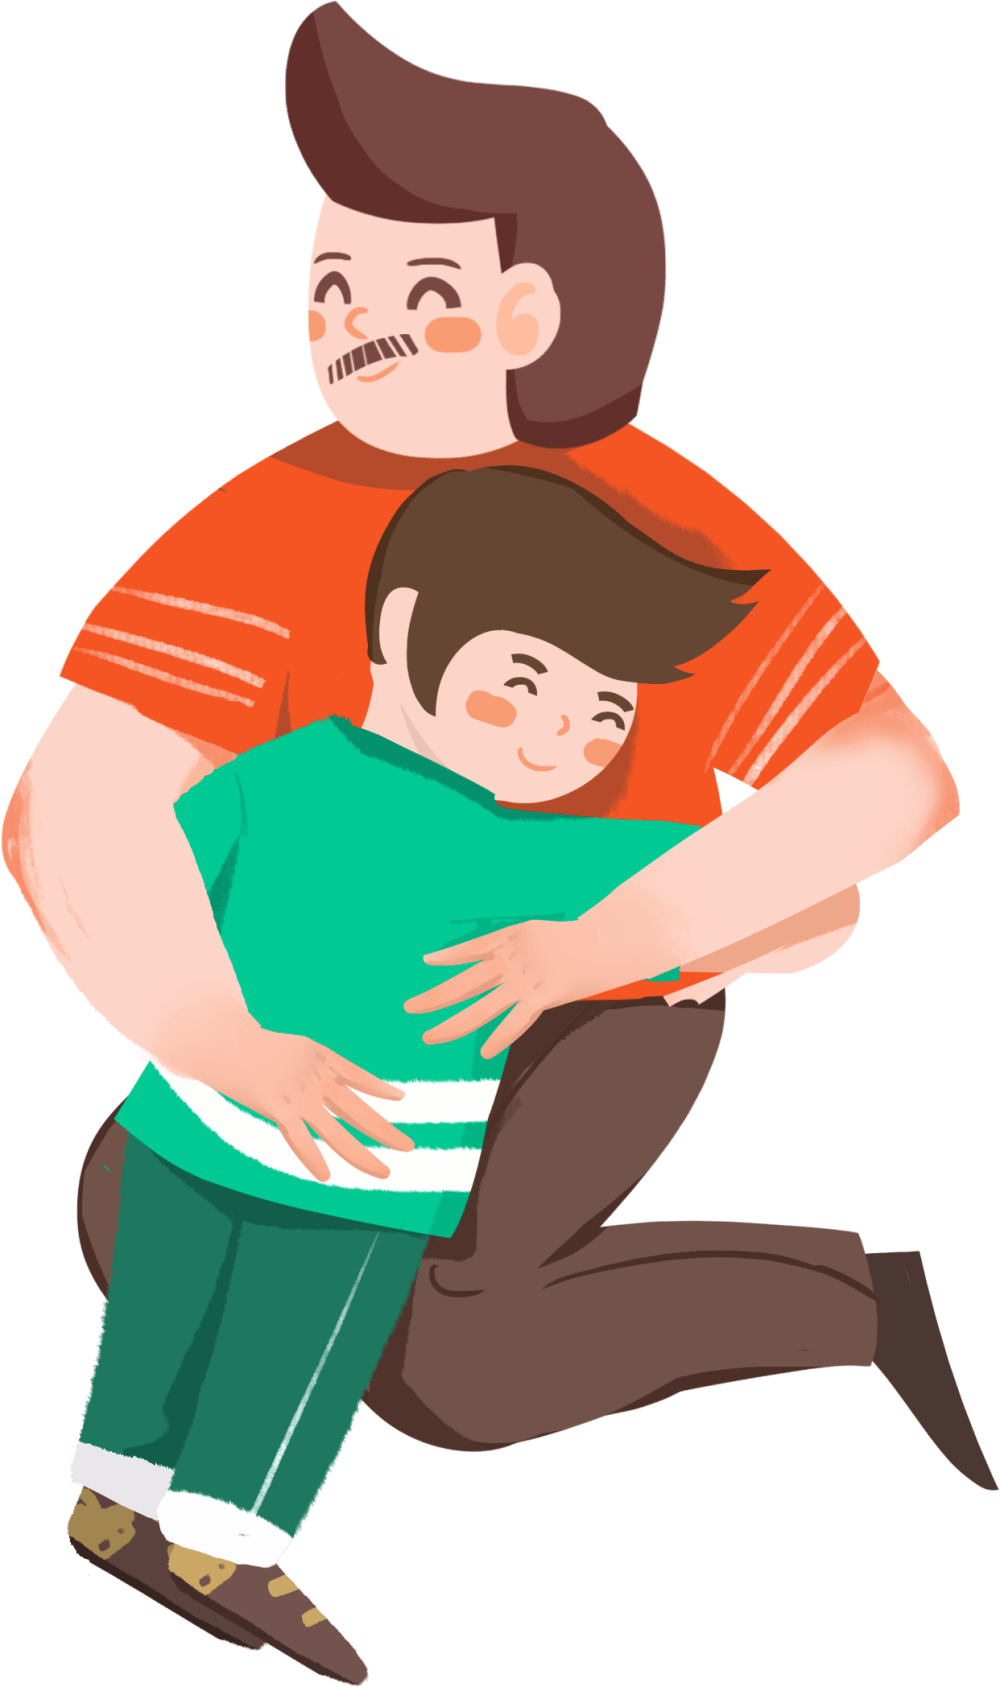 medium resolution of cartoon dad sitting png download hd hand drawn